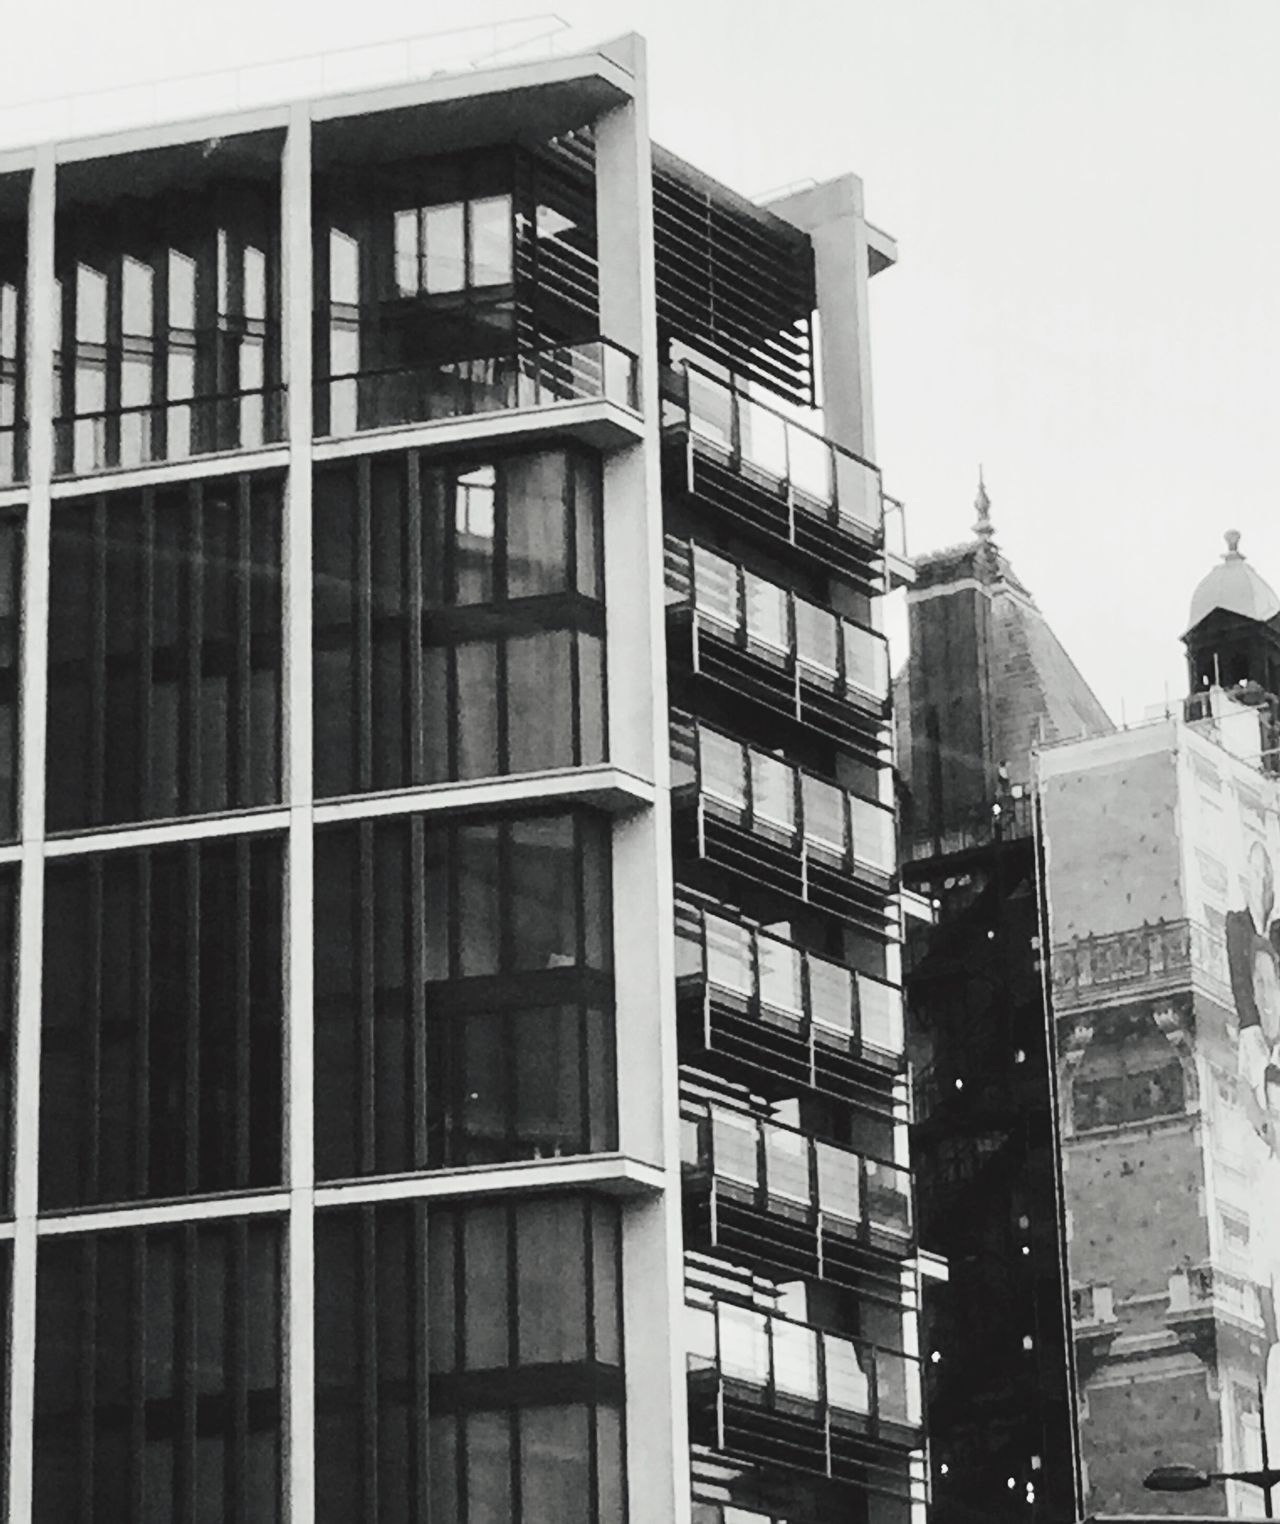 Office Block Sky Day Building Exterior Architecture Built Structure City Outdoors Low Angle View Modern Skyscraper Fire Escape The City Light Blackandwhite Photography